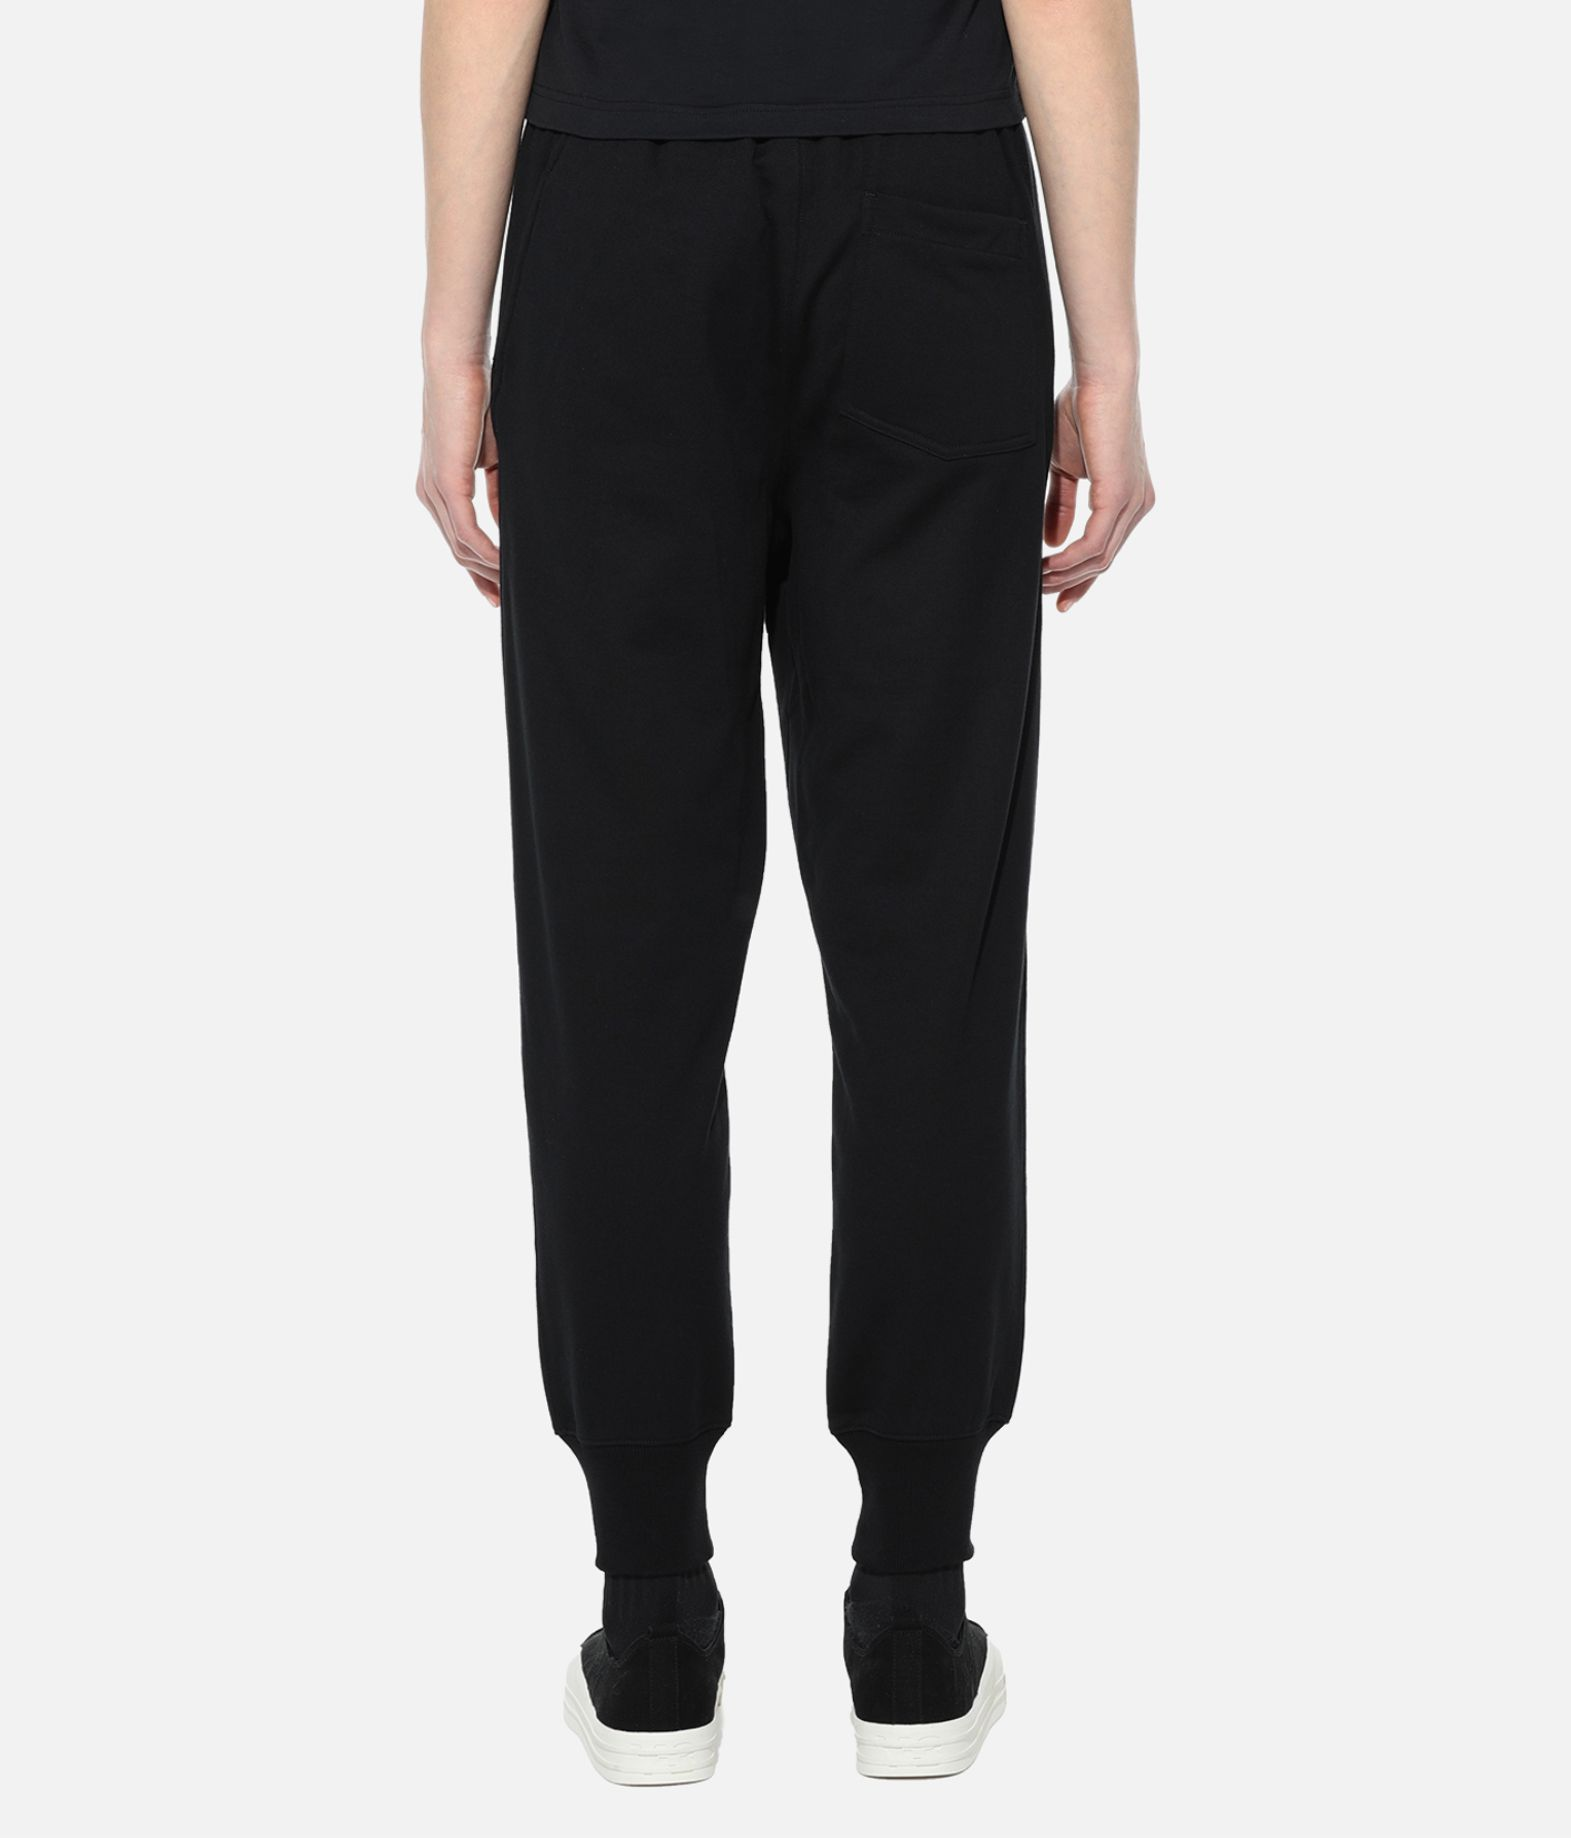 Y-3 Y-3 Classic Cuffed Pants Casual pants Woman d